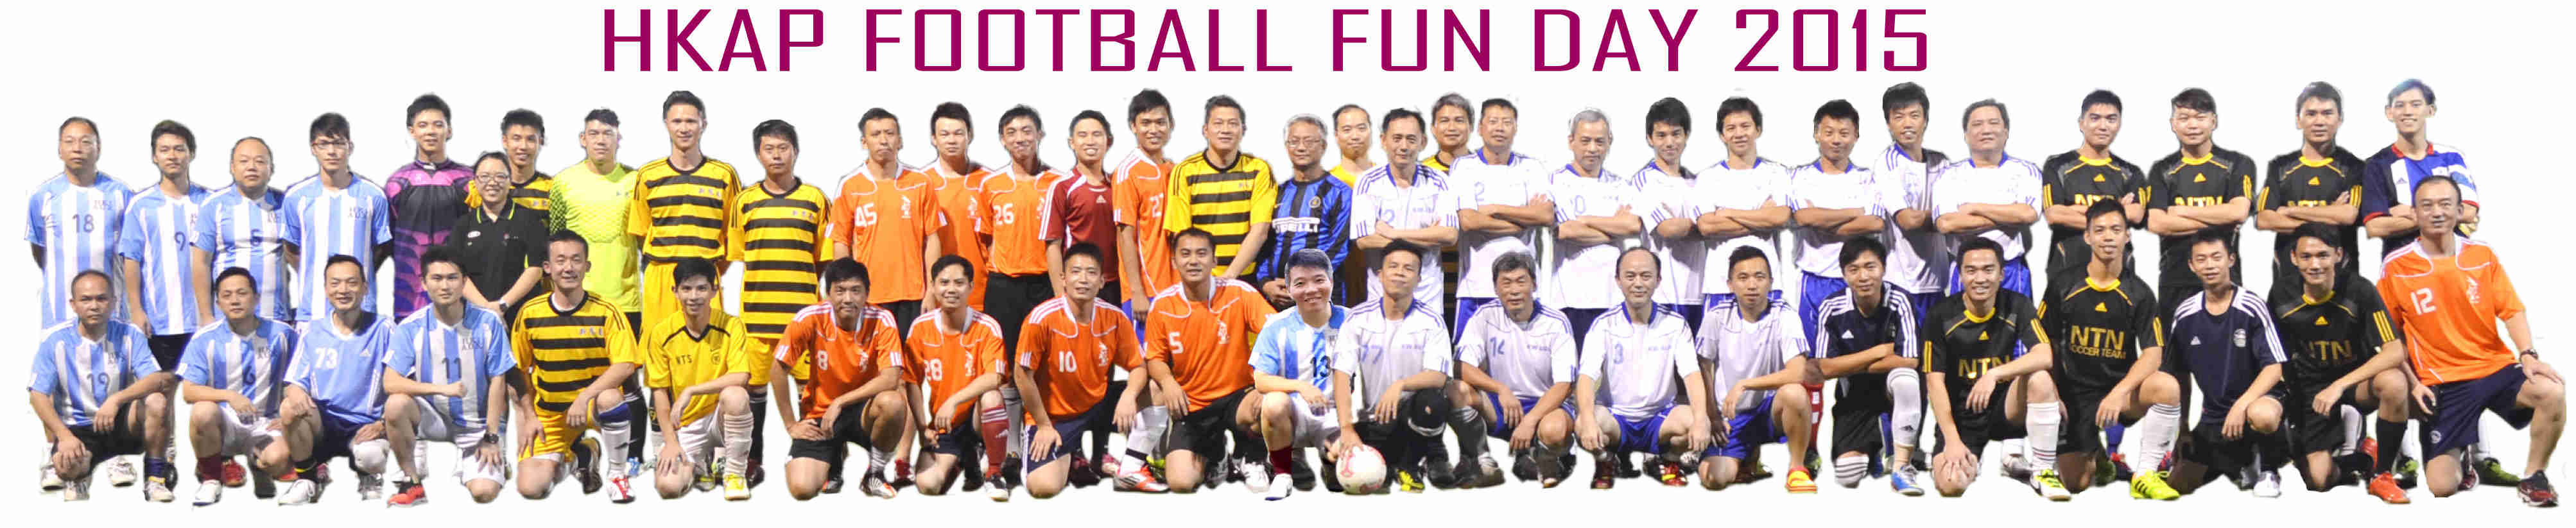 HKAP Football Fun Day 2015